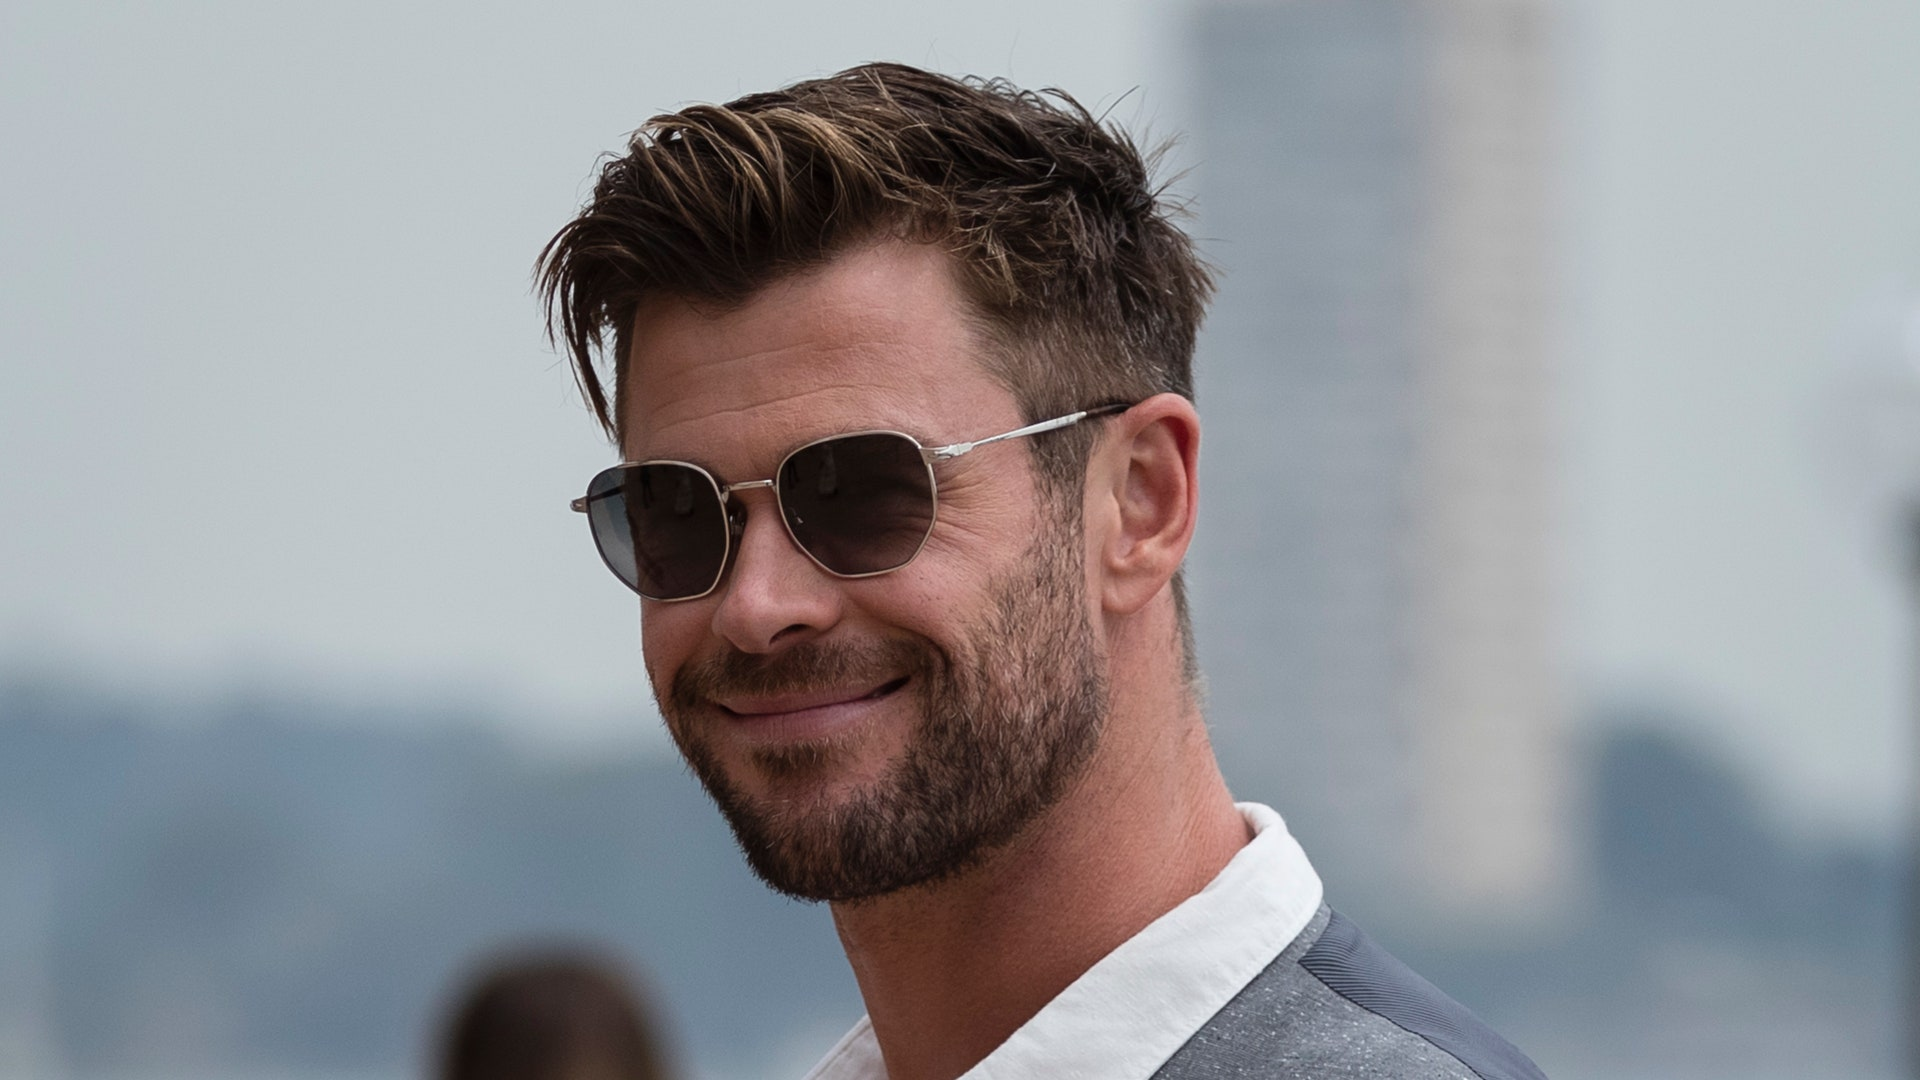 Chris Hemsworth Hair Design Ideas